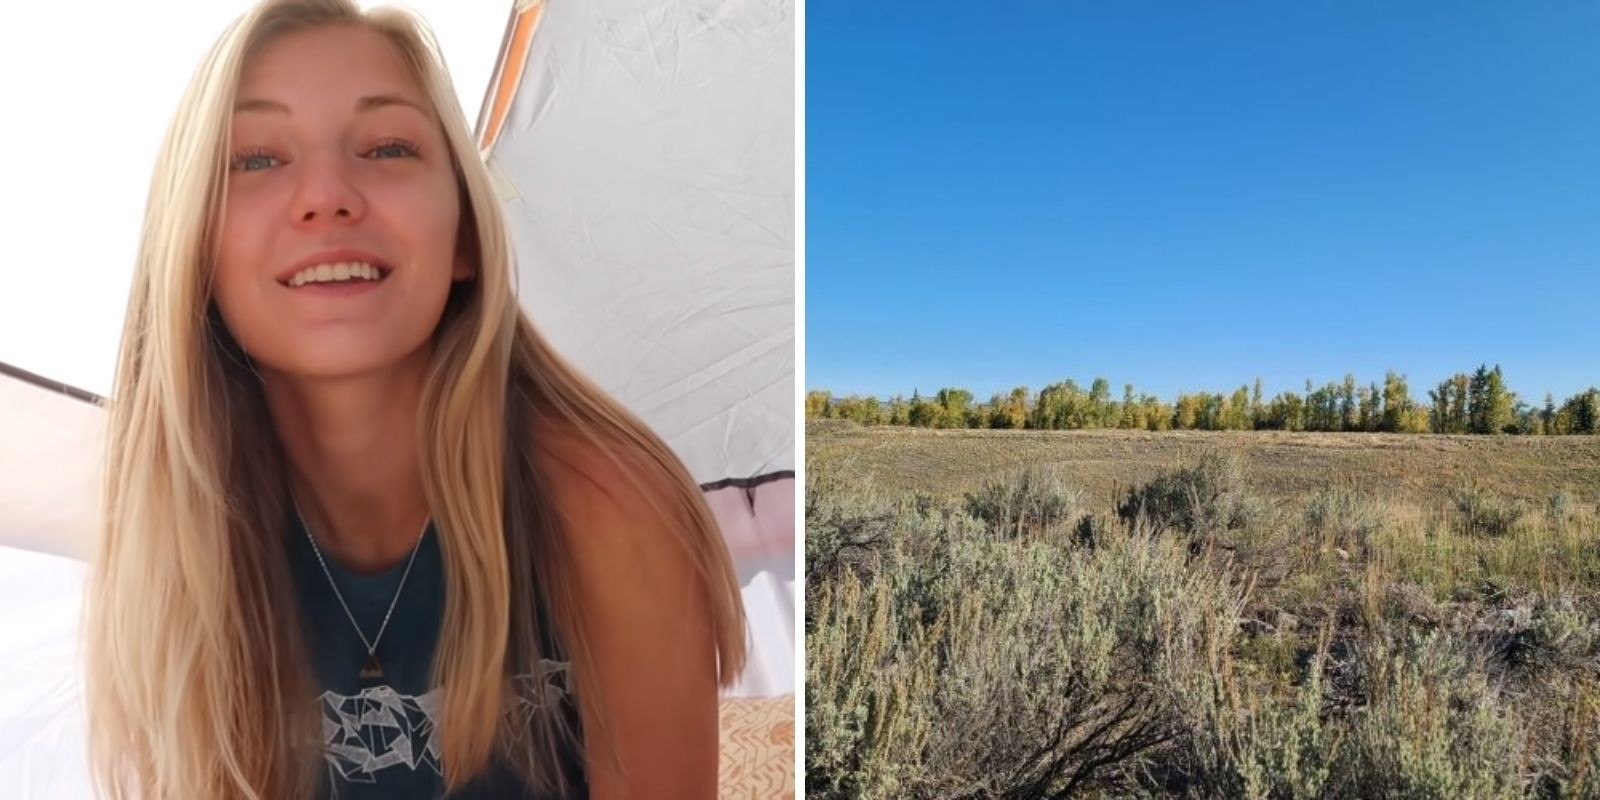 BREAKING: FBI confirms discovery of human remains 'consistent with' description of Gabby Petito